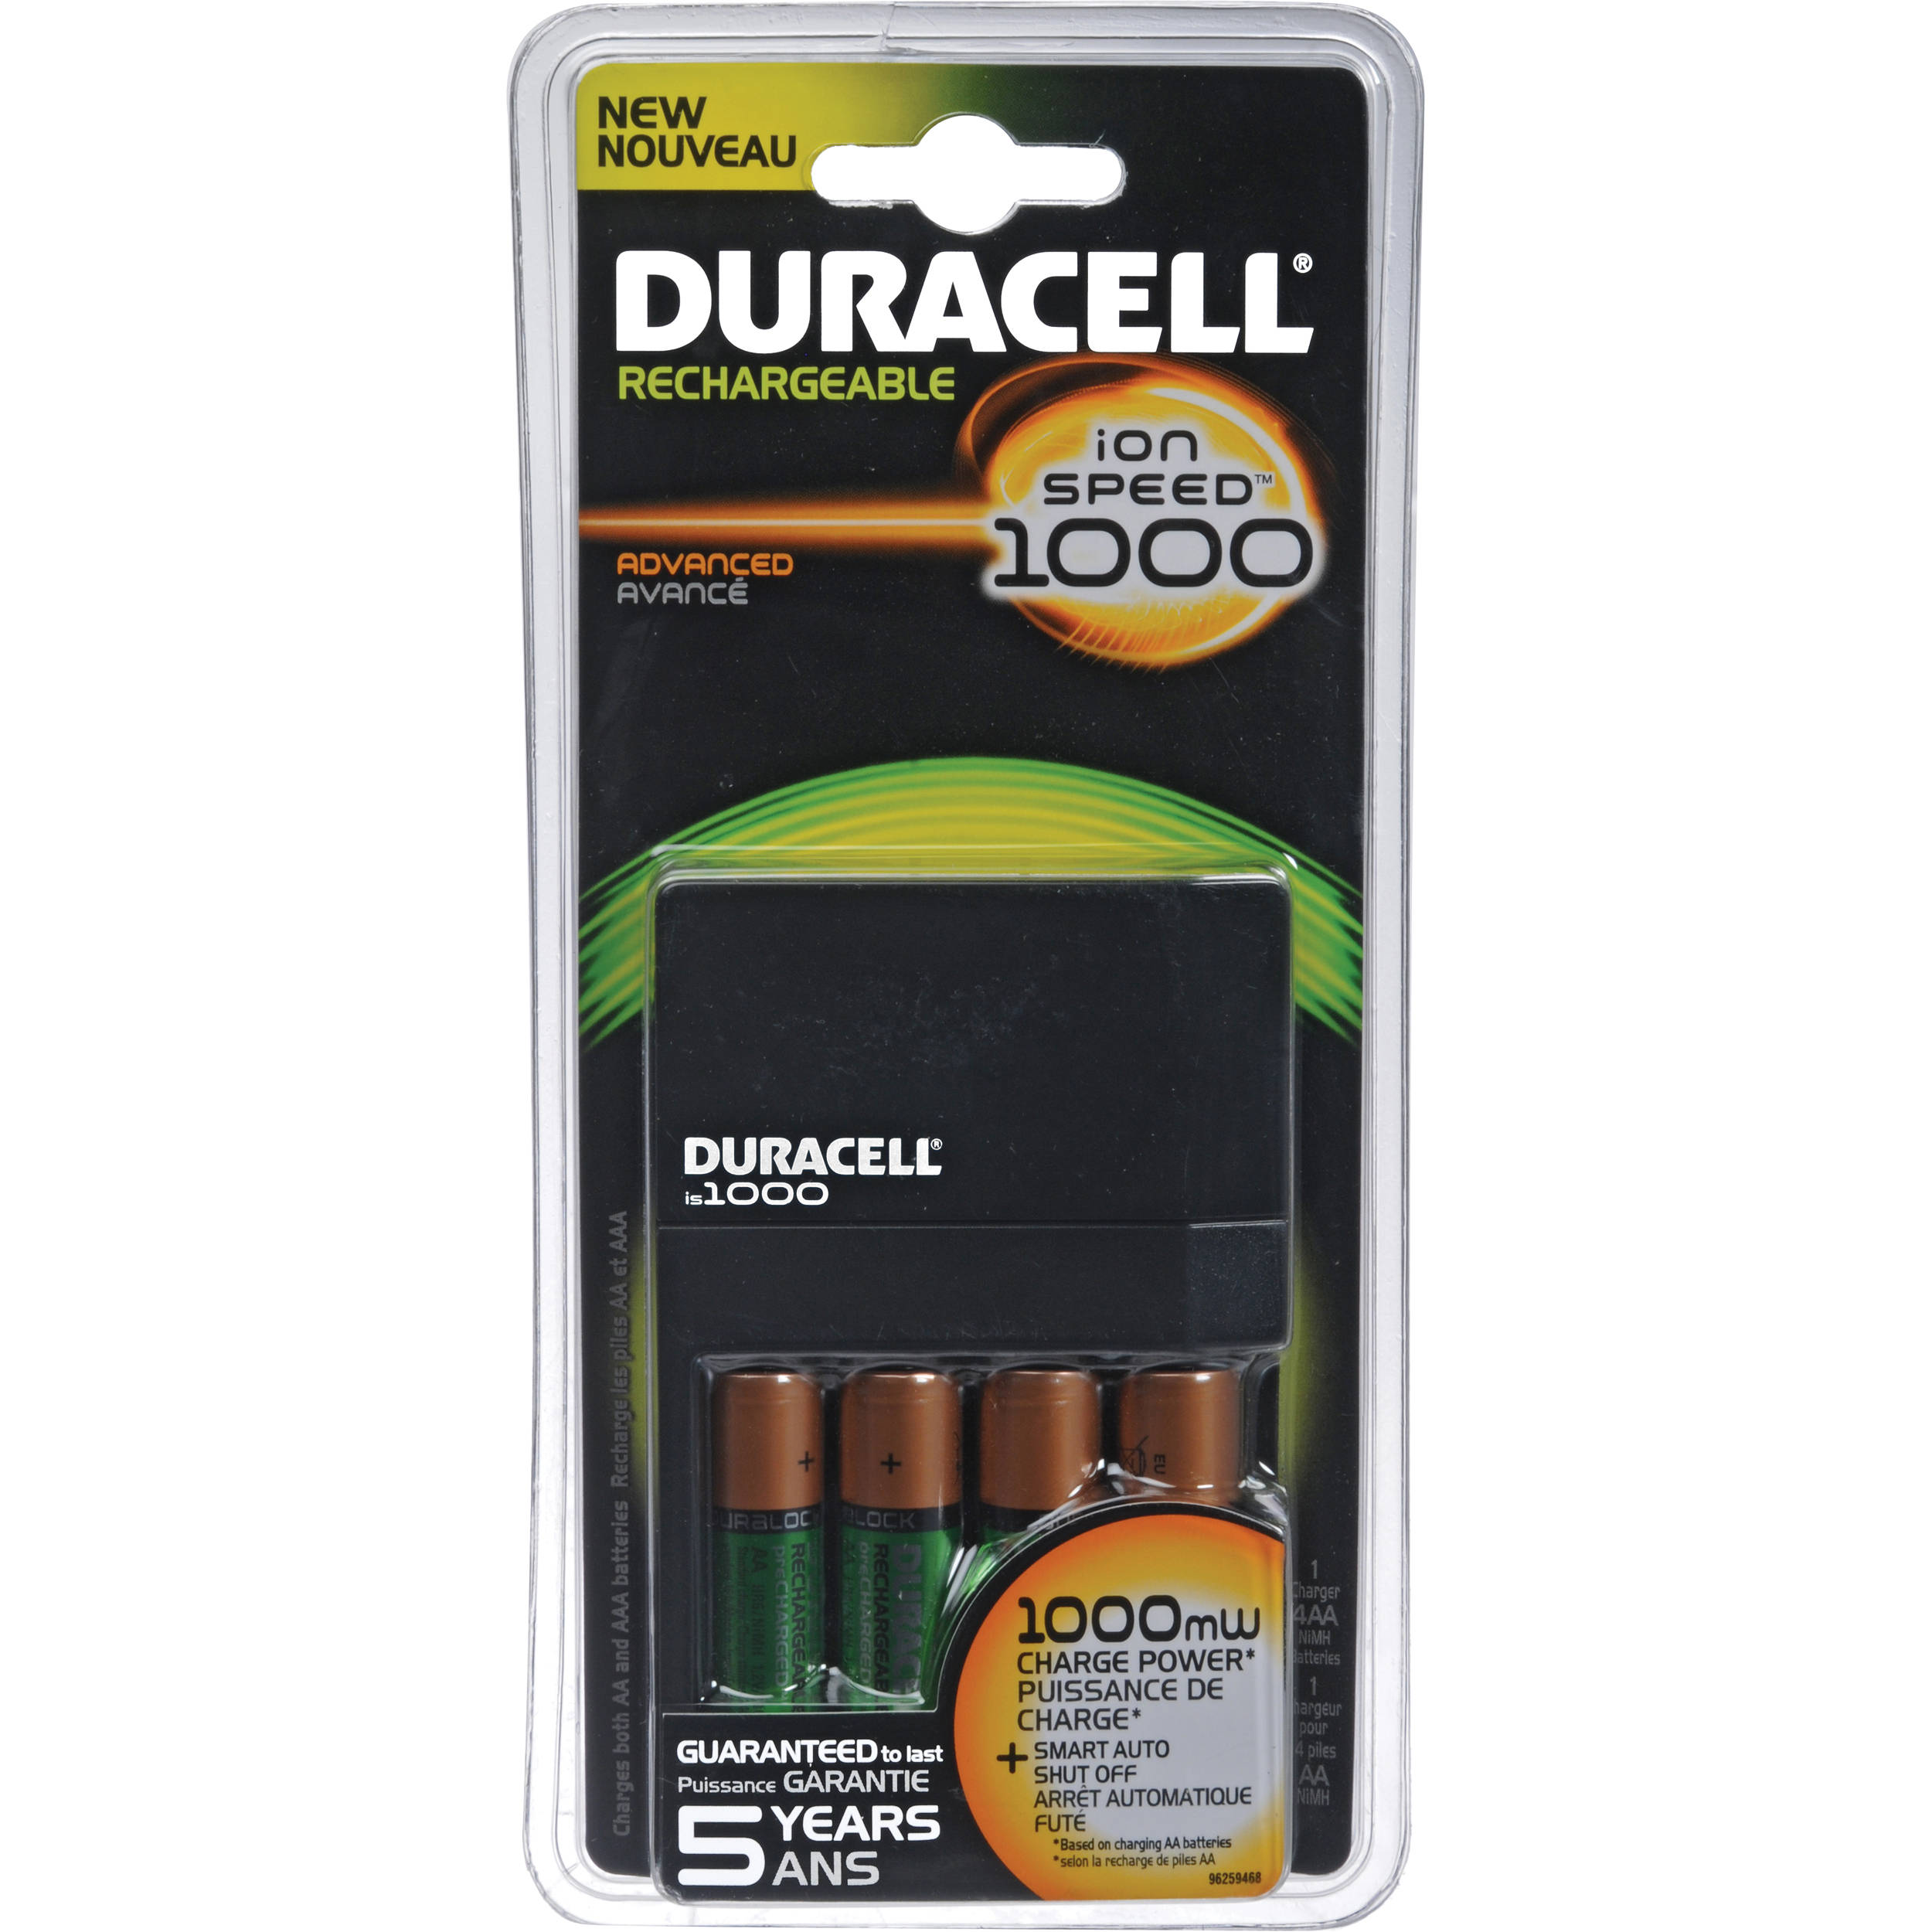 duracell ion speed 1000 battery charger with 4 aa nimh cef14dx4n rh bhphotovideo com